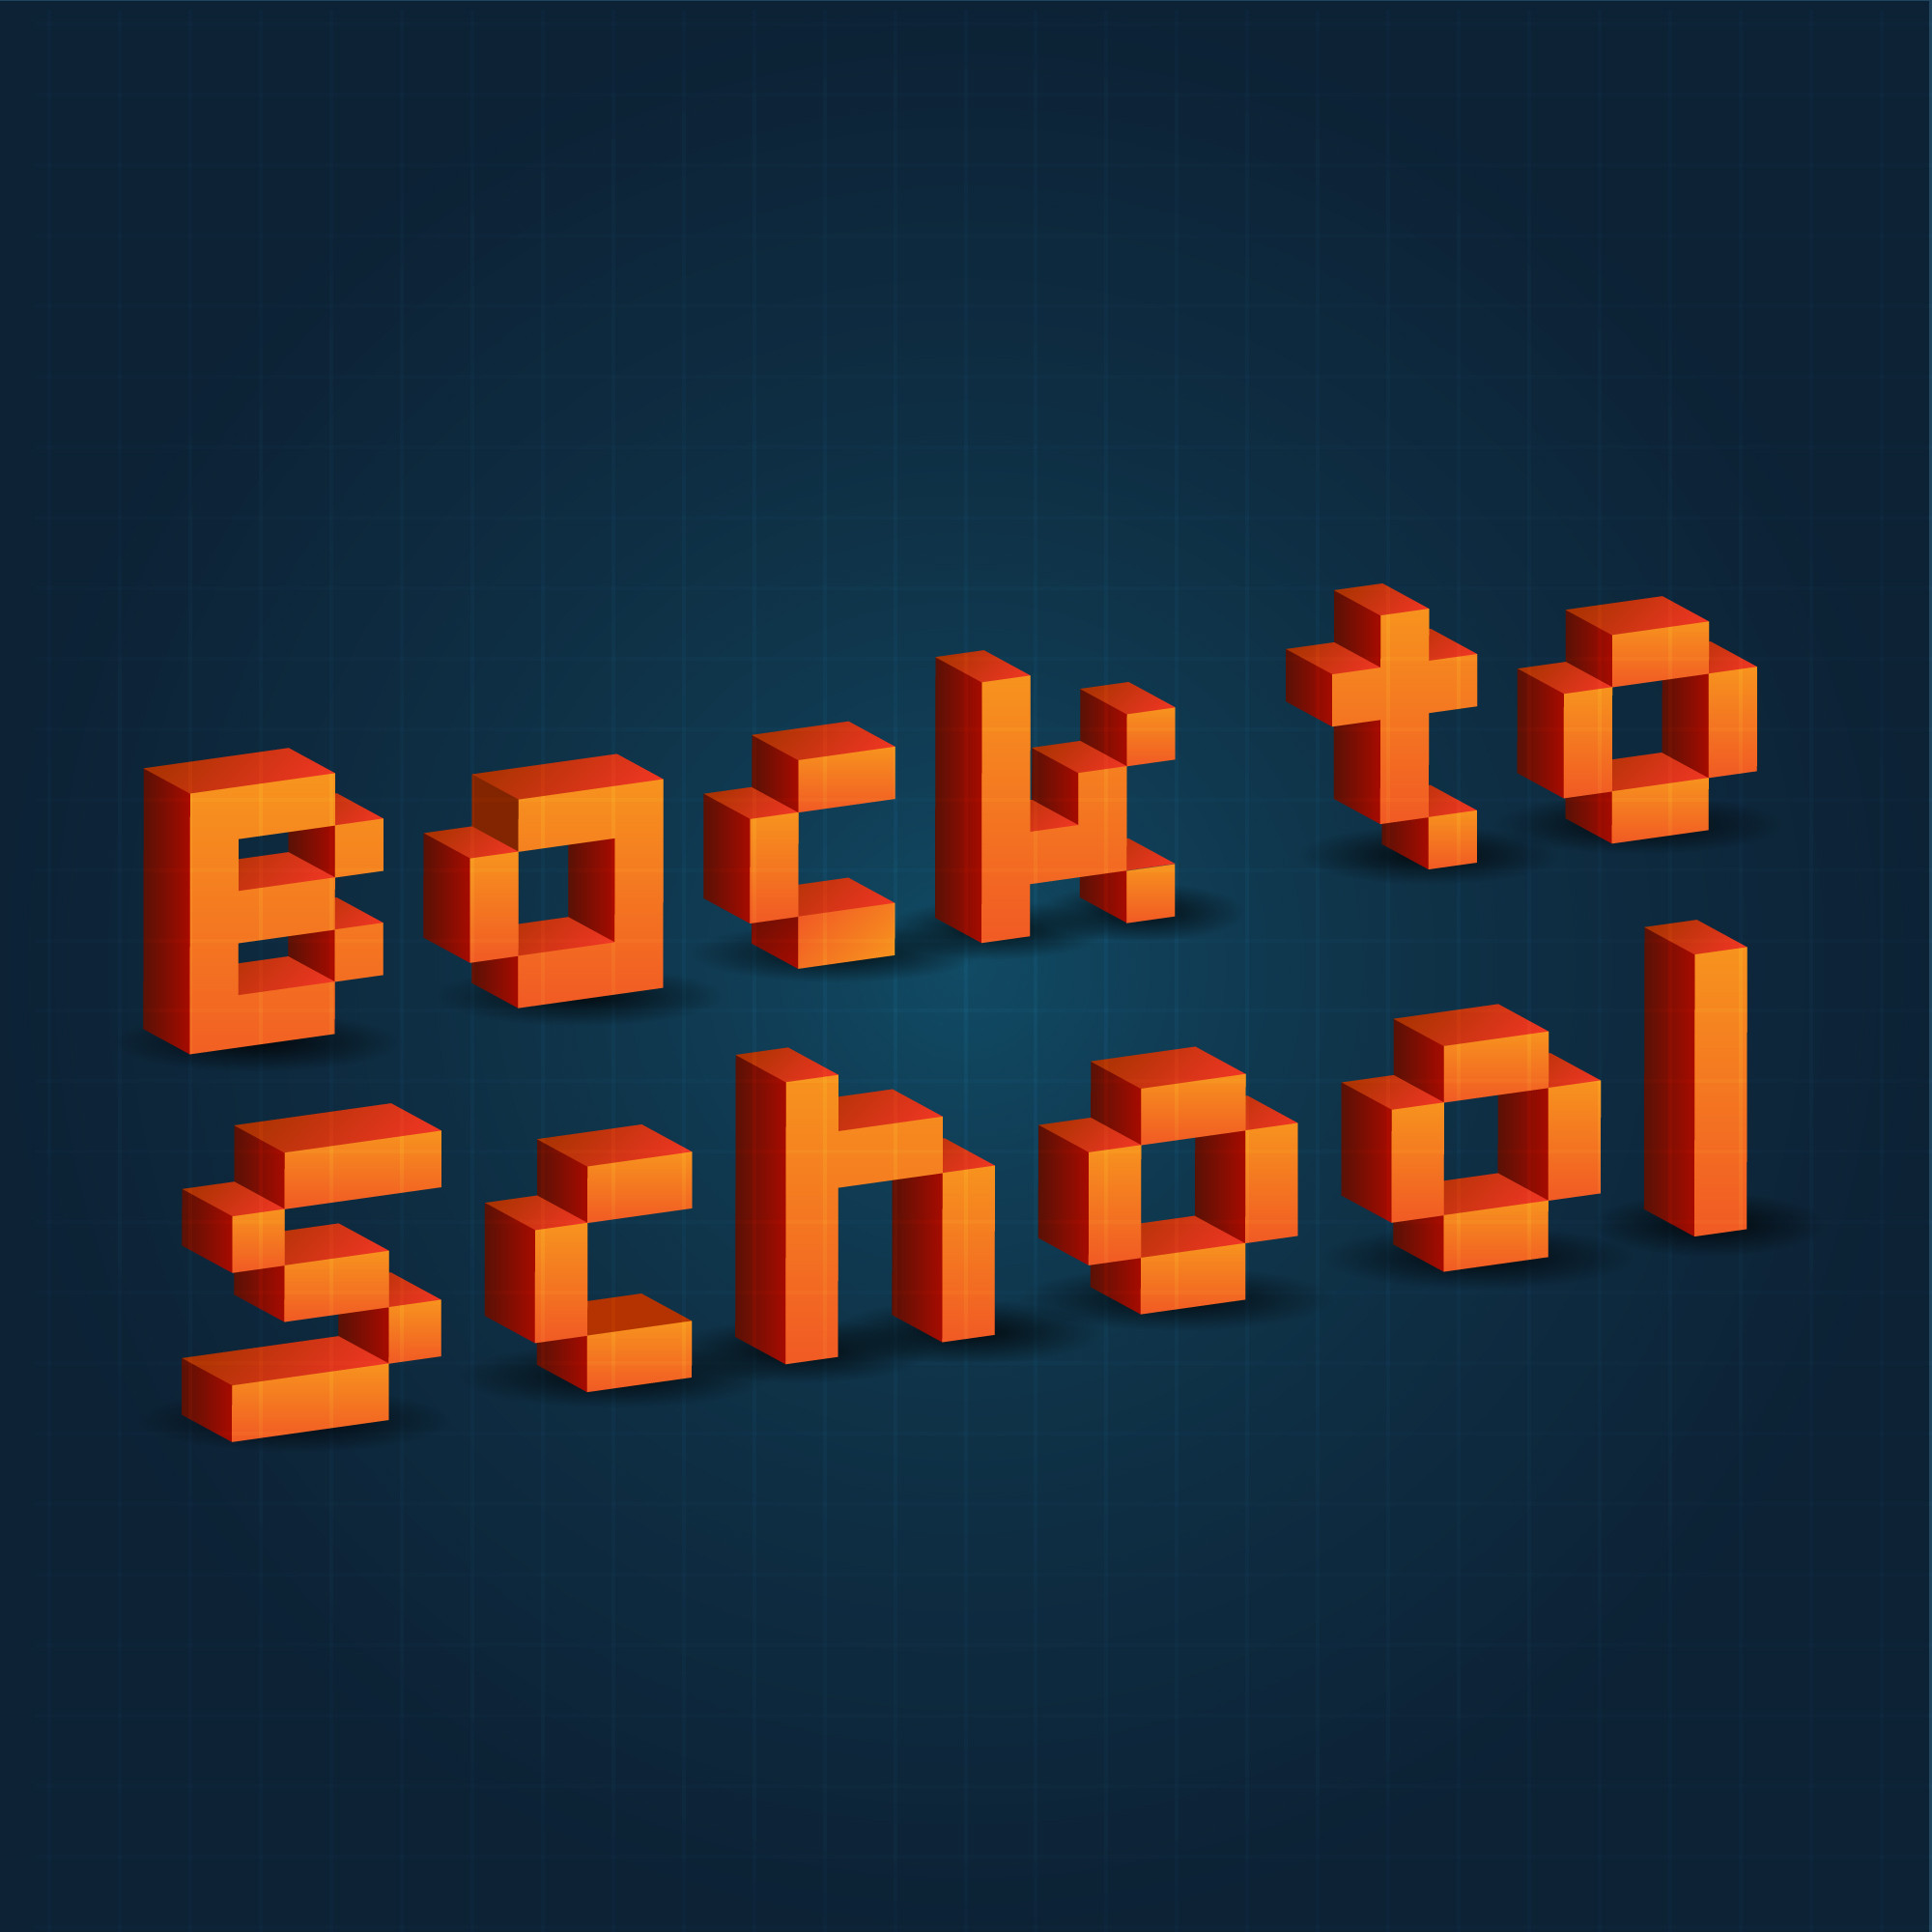 Back to school message with 3D pixels